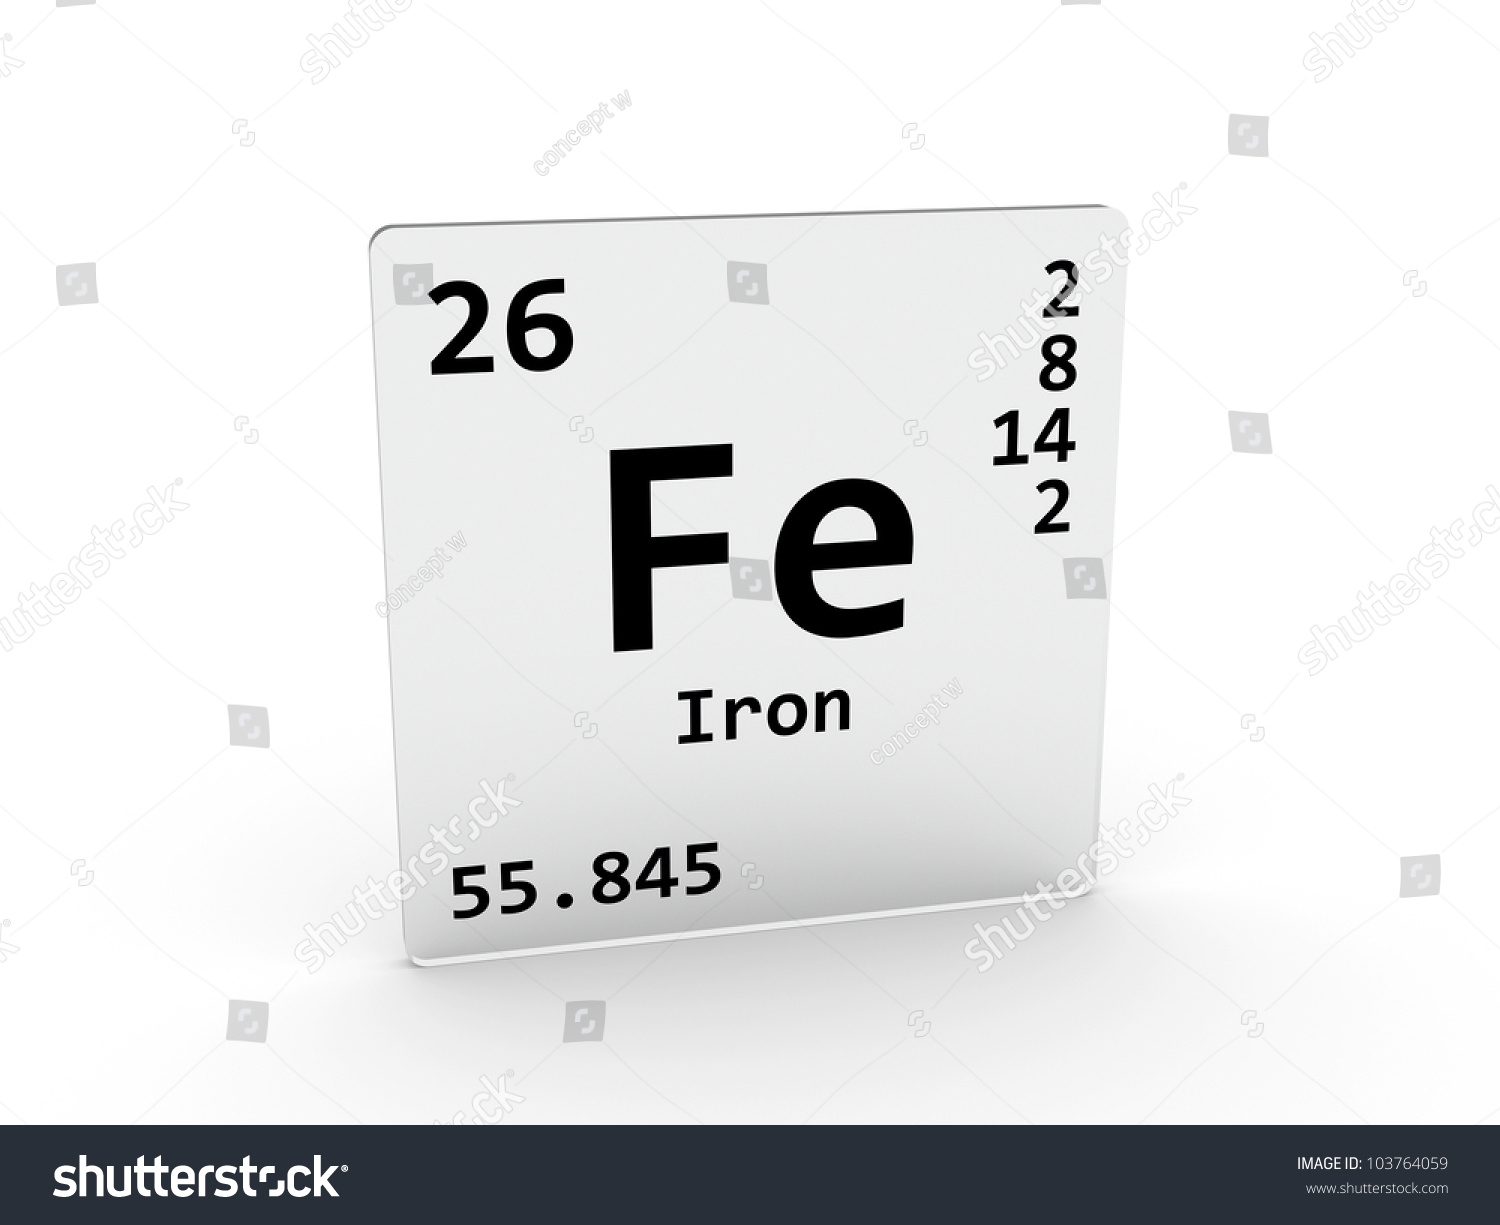 Iron symbol fe element periodic table stock illustration 103764059 iron symbol fe element of the periodic table gamestrikefo Gallery